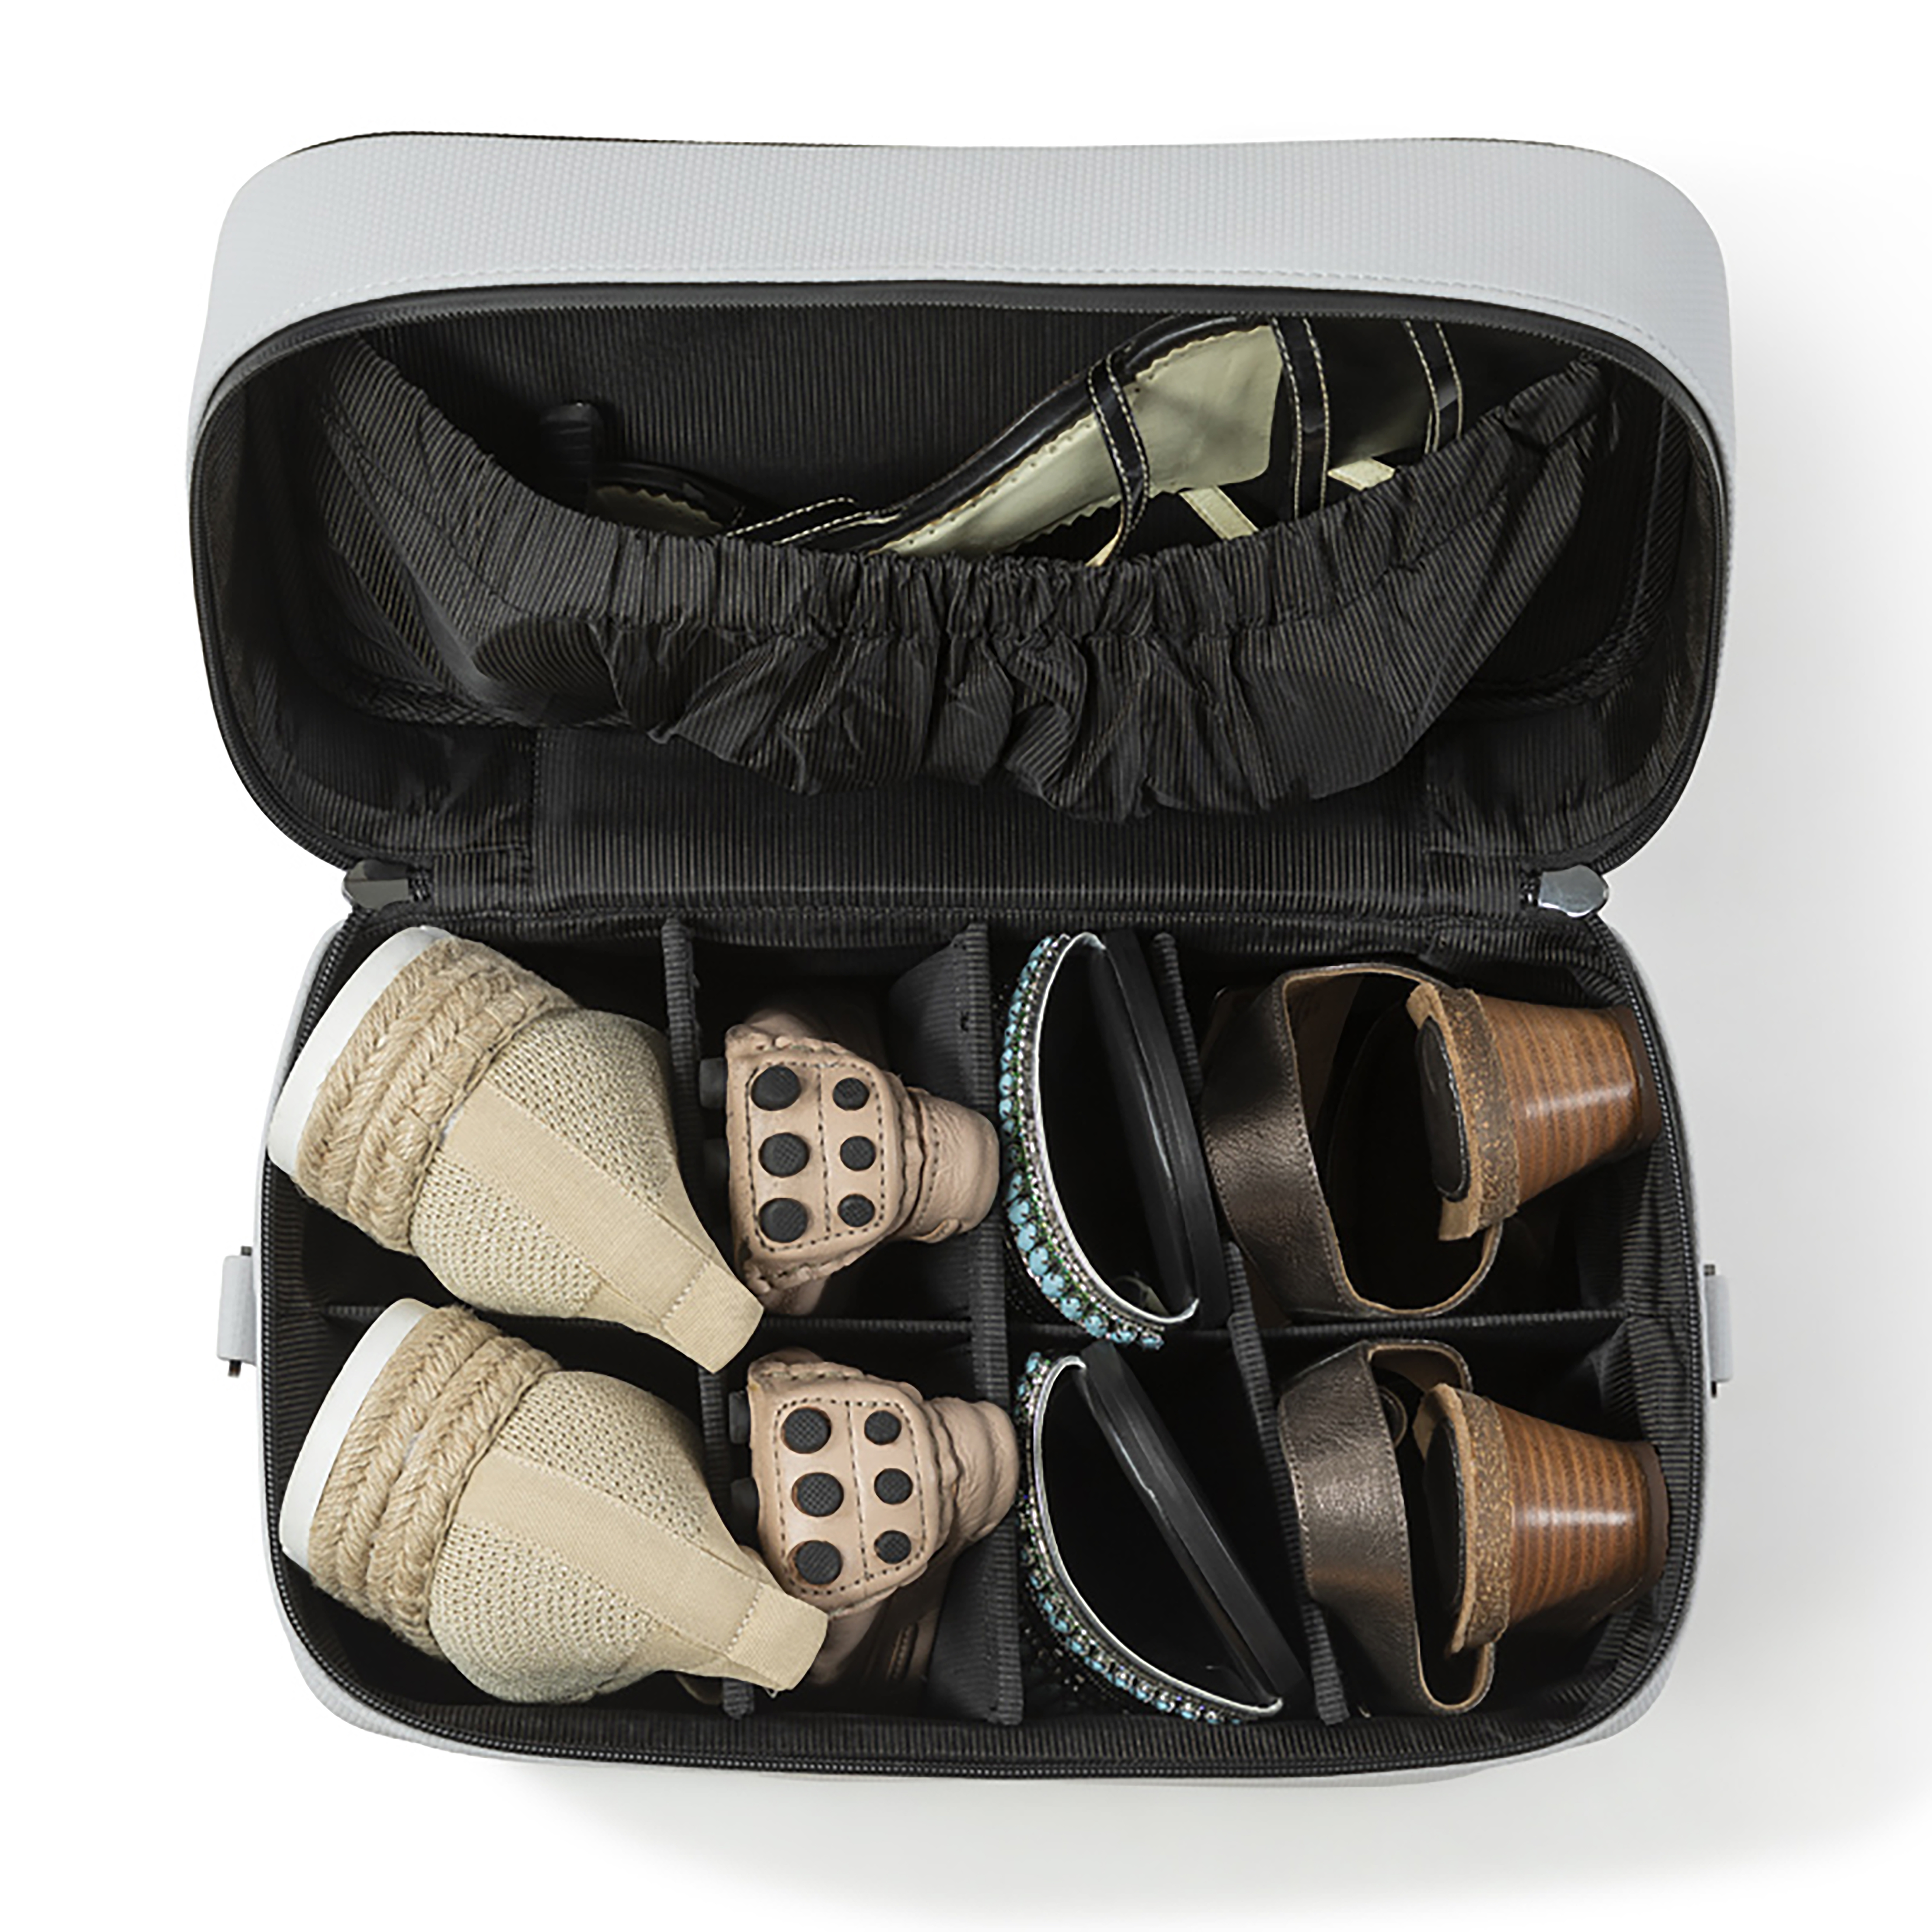 Rhode Island-based company Leigh ShoeCase uses antimicrobial technology in its travel products and face masks.